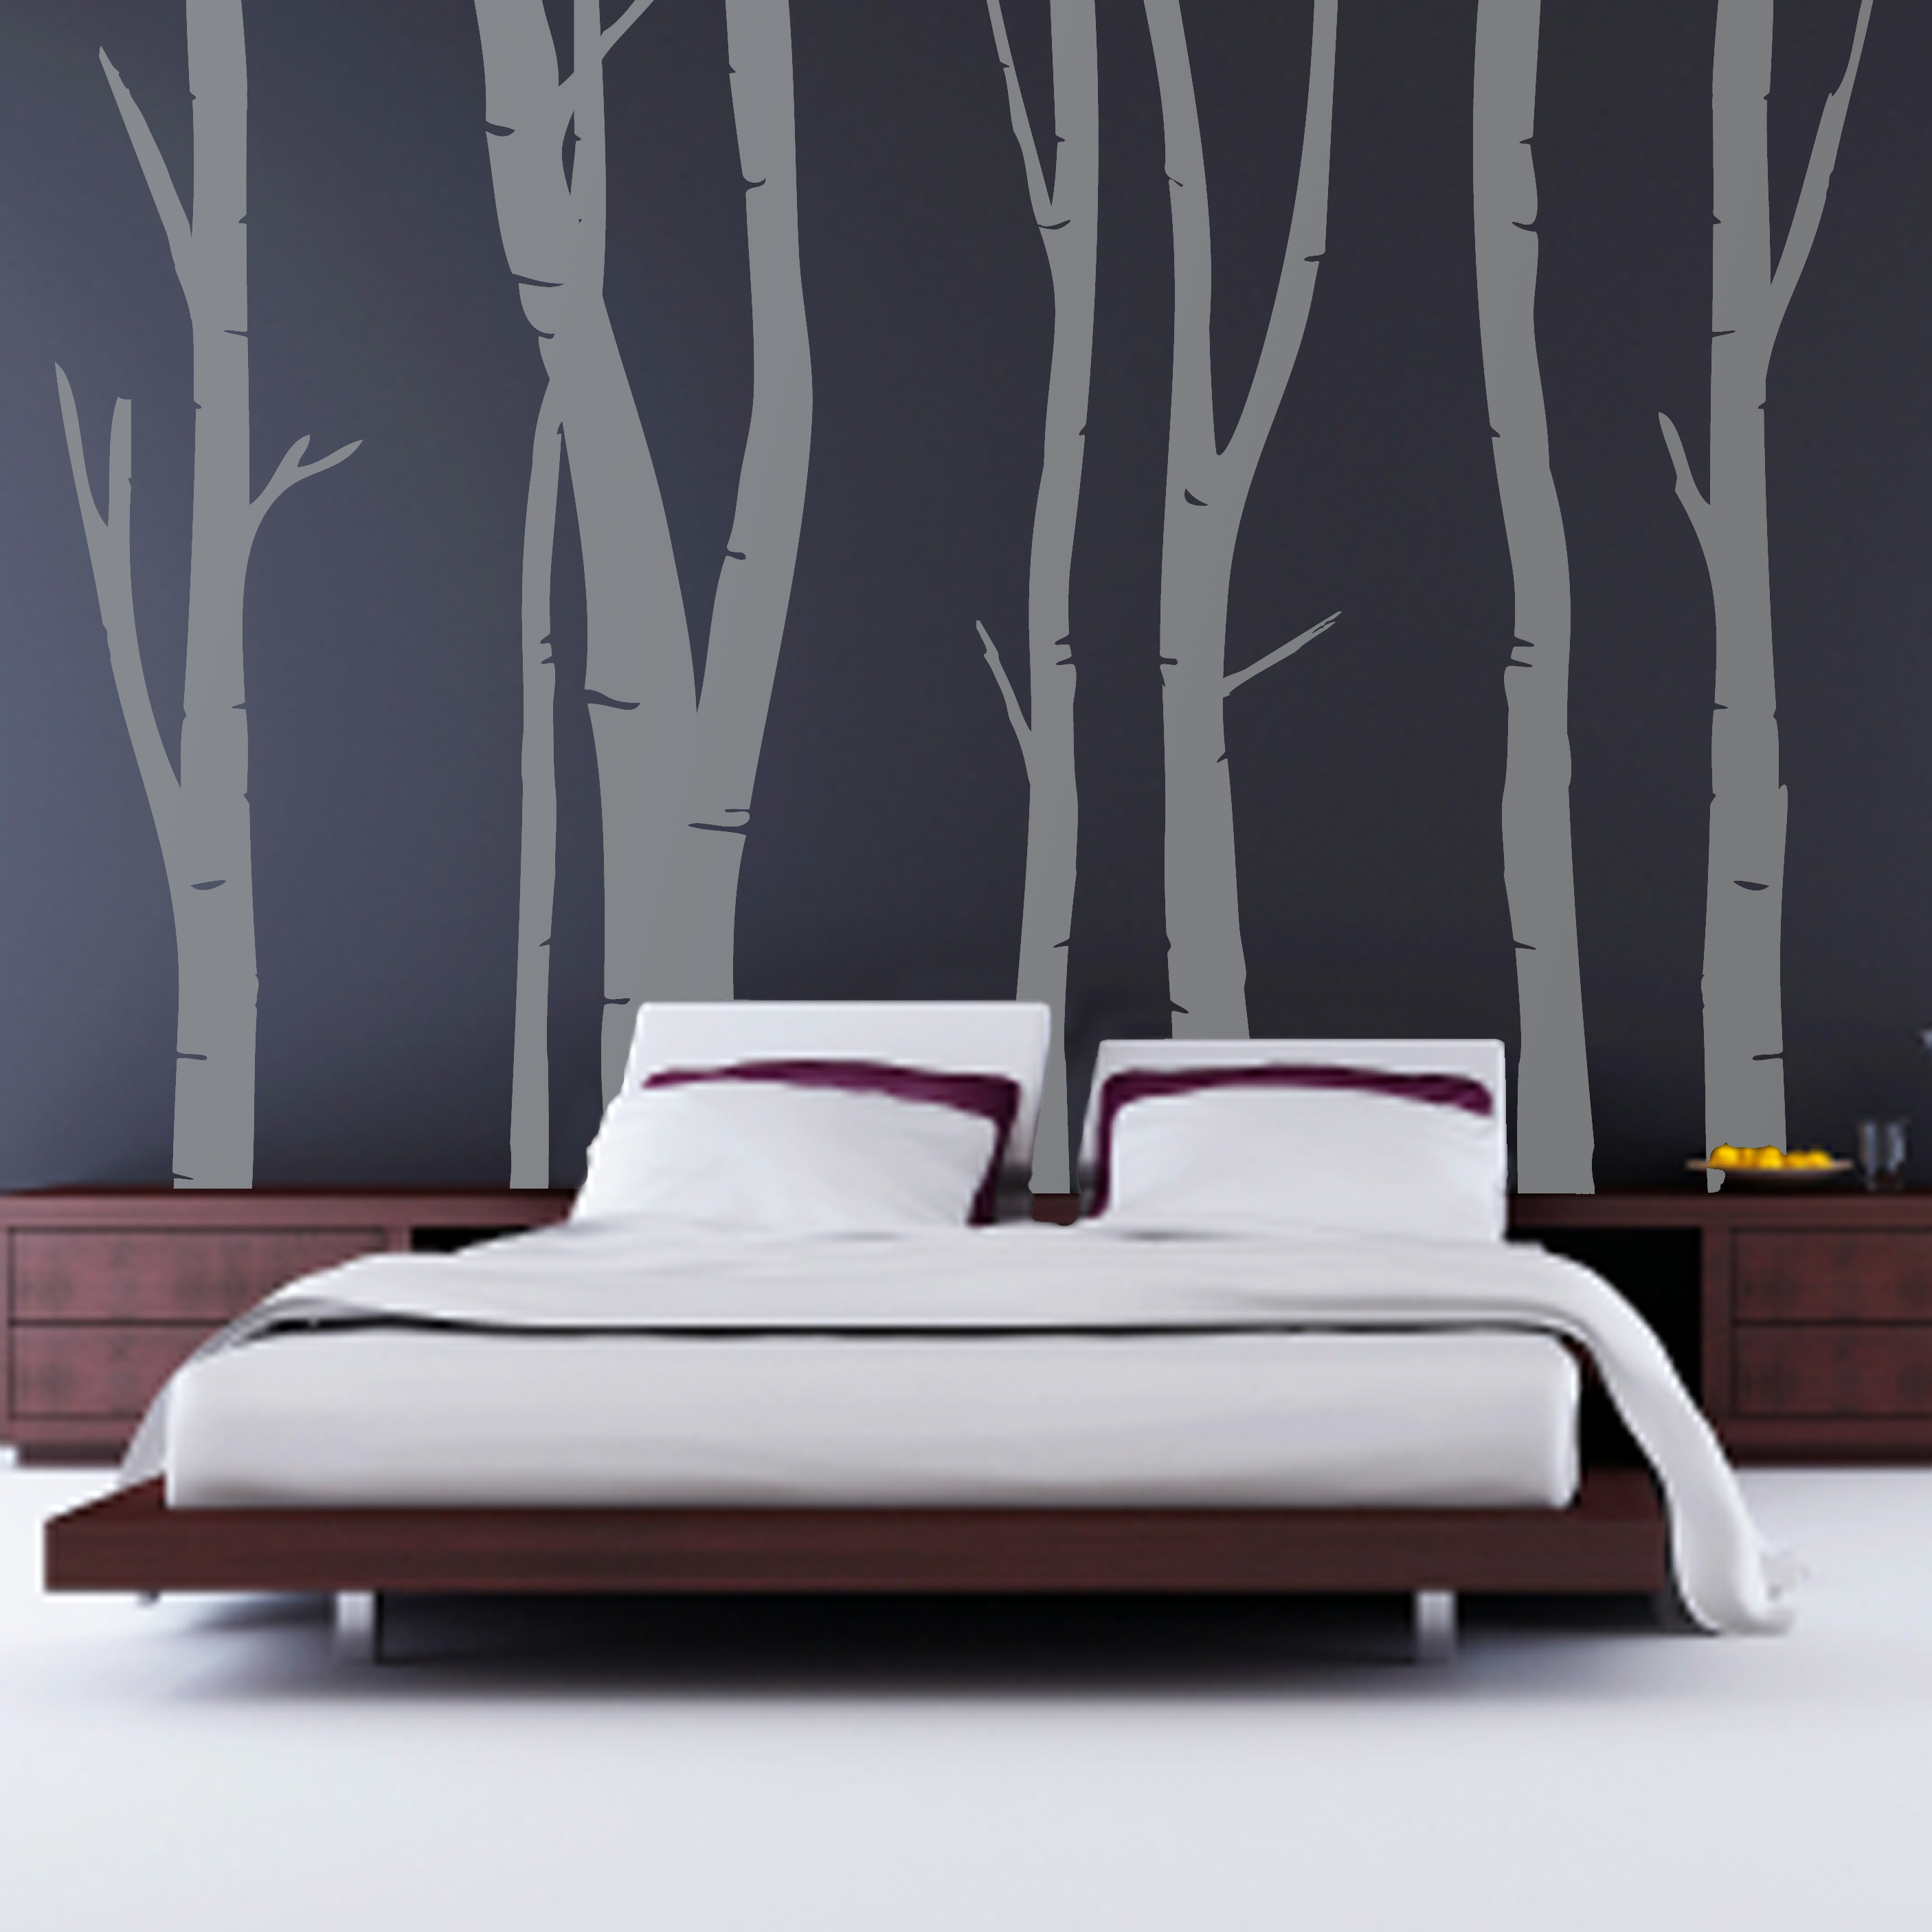 Modern bedroom birchforest bedroom walljpg modern bedroom room ...